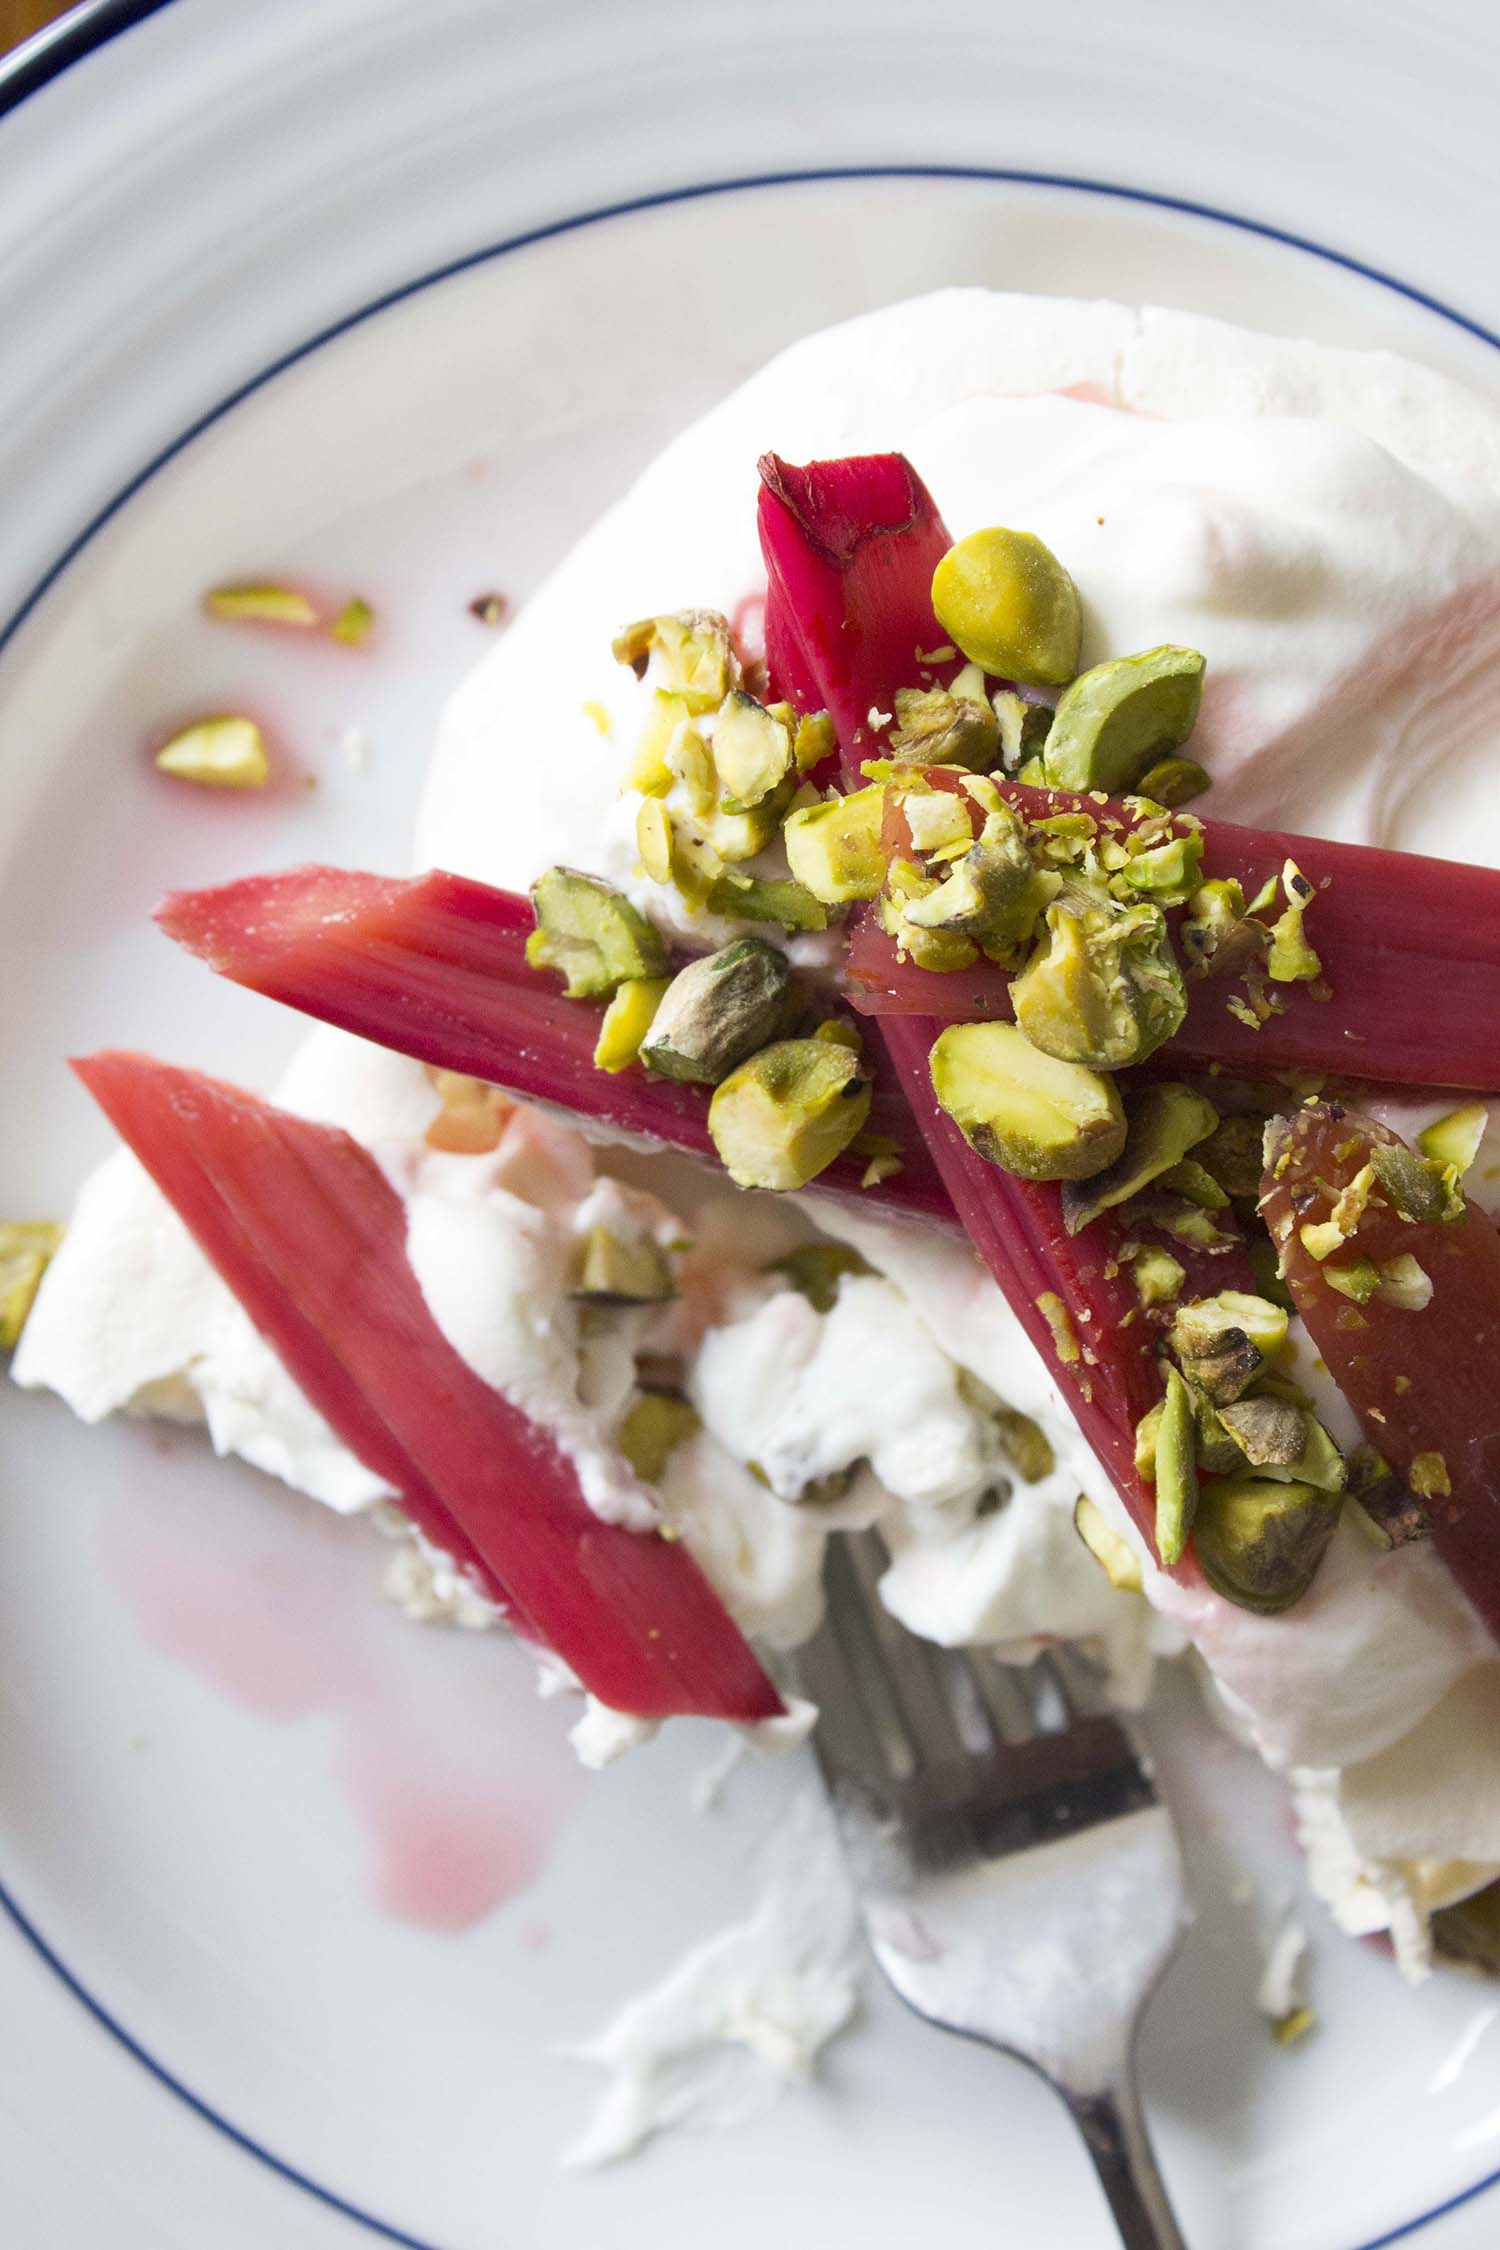 Mini Pavlovas with Roasted Rhubarb and Pistachios  | Image:  Laura Messersmith